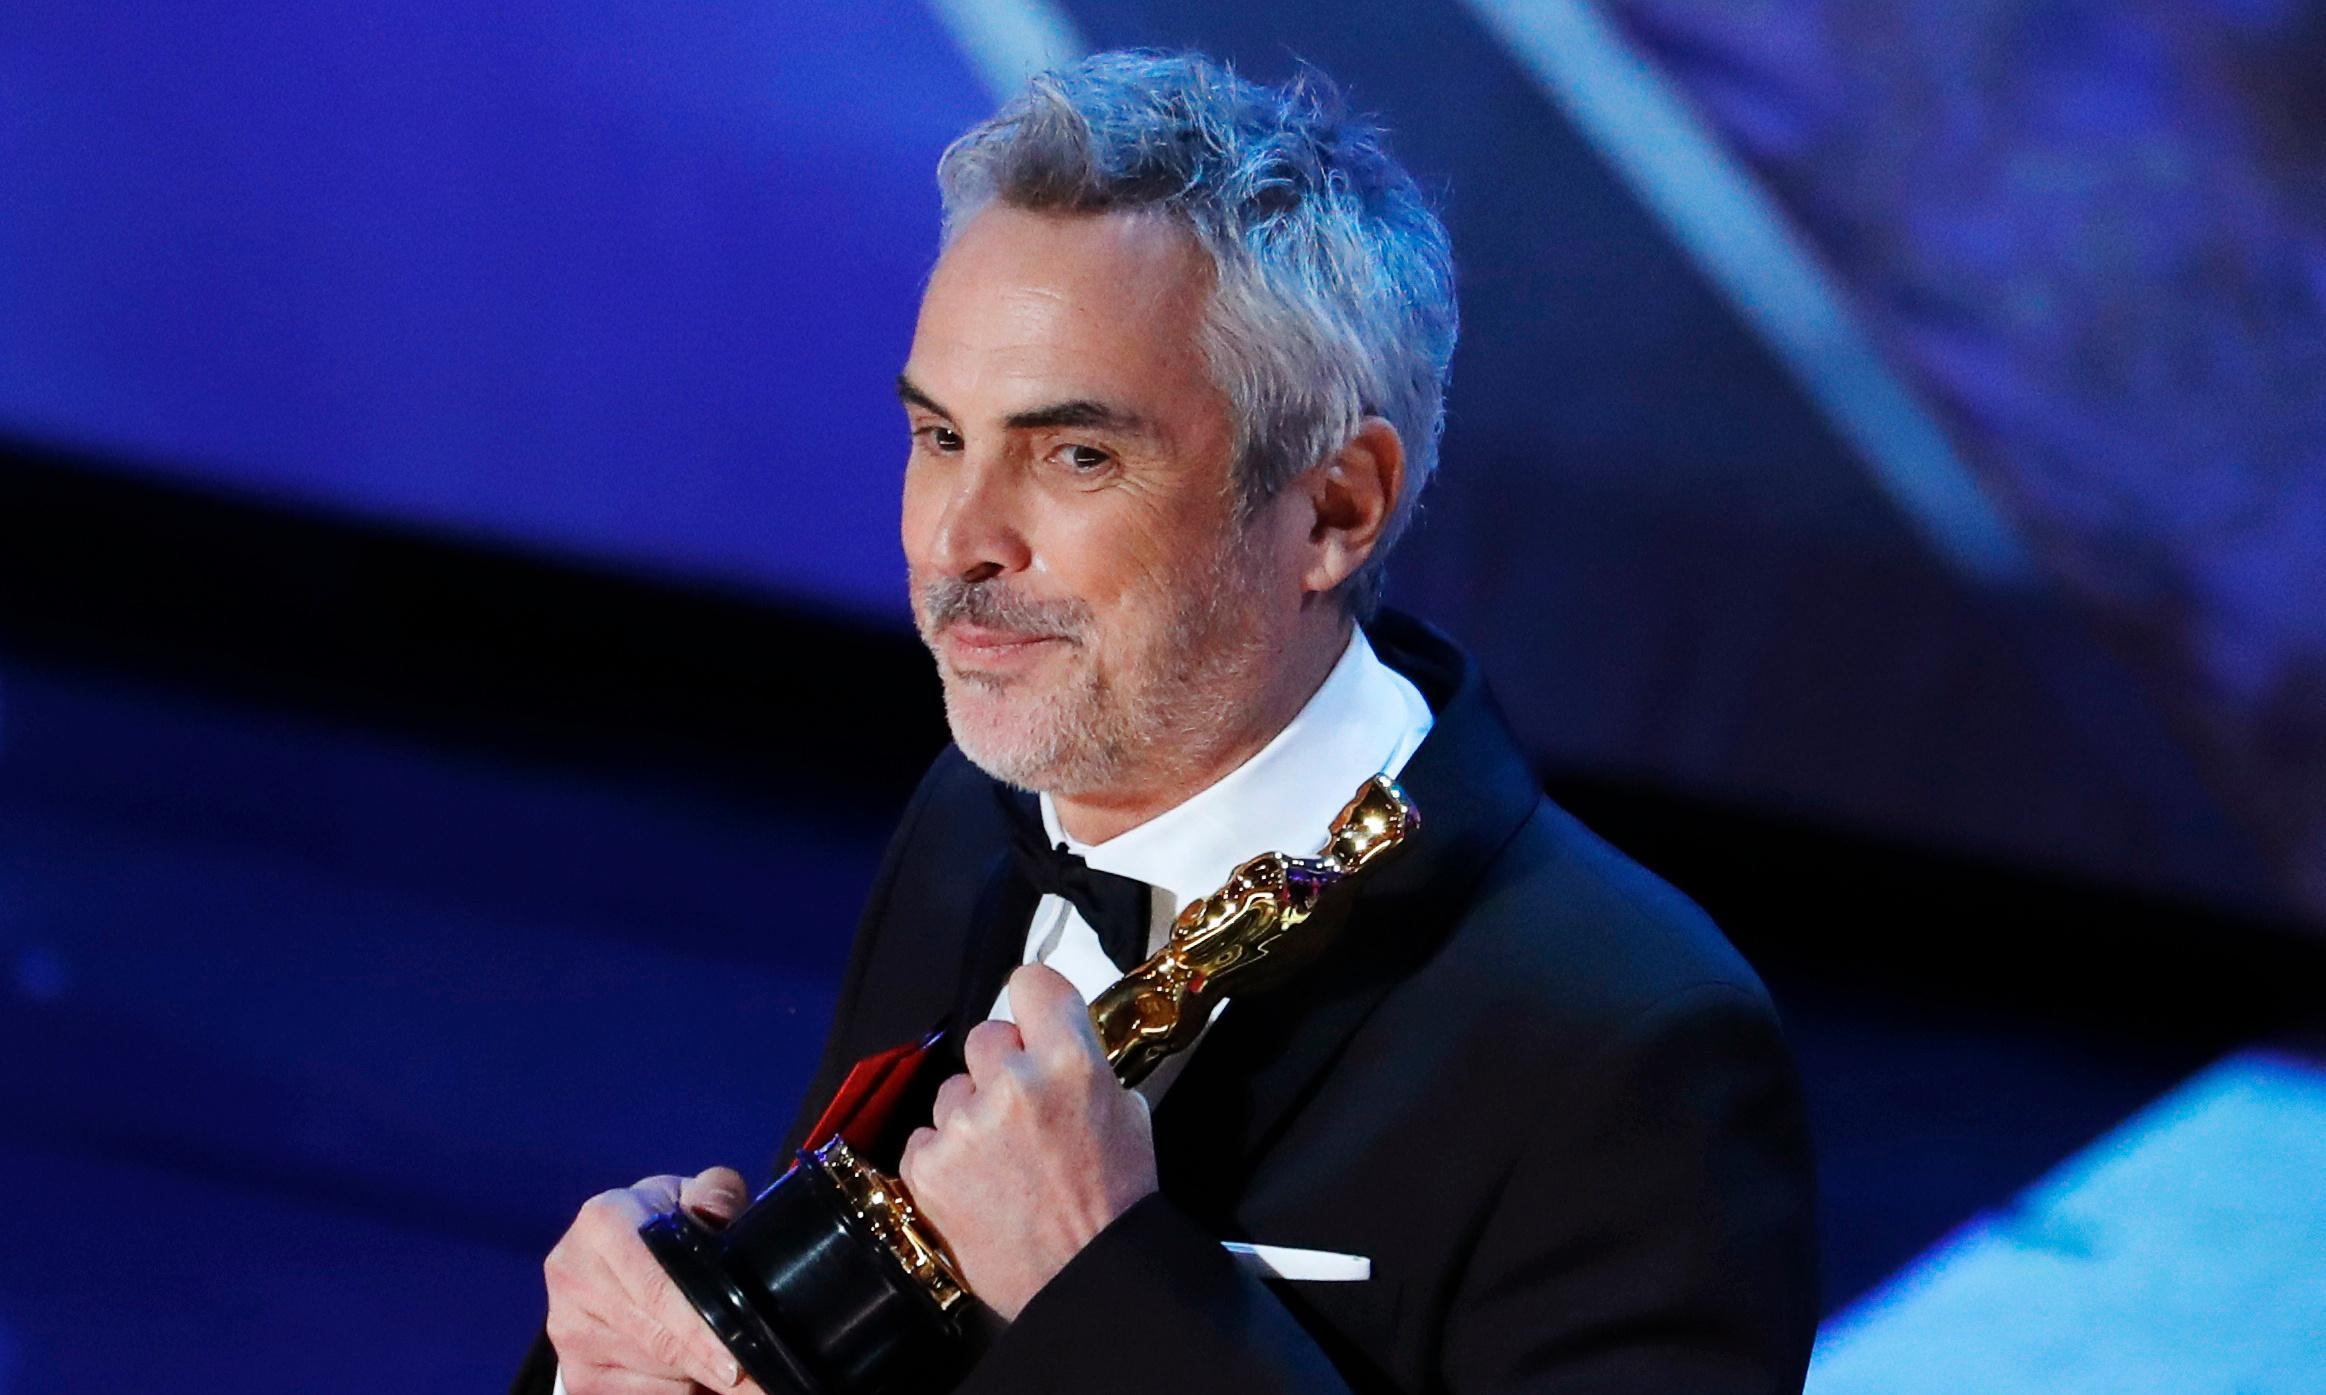 Alfonso Cuarón wins Oscar for best director for Roma